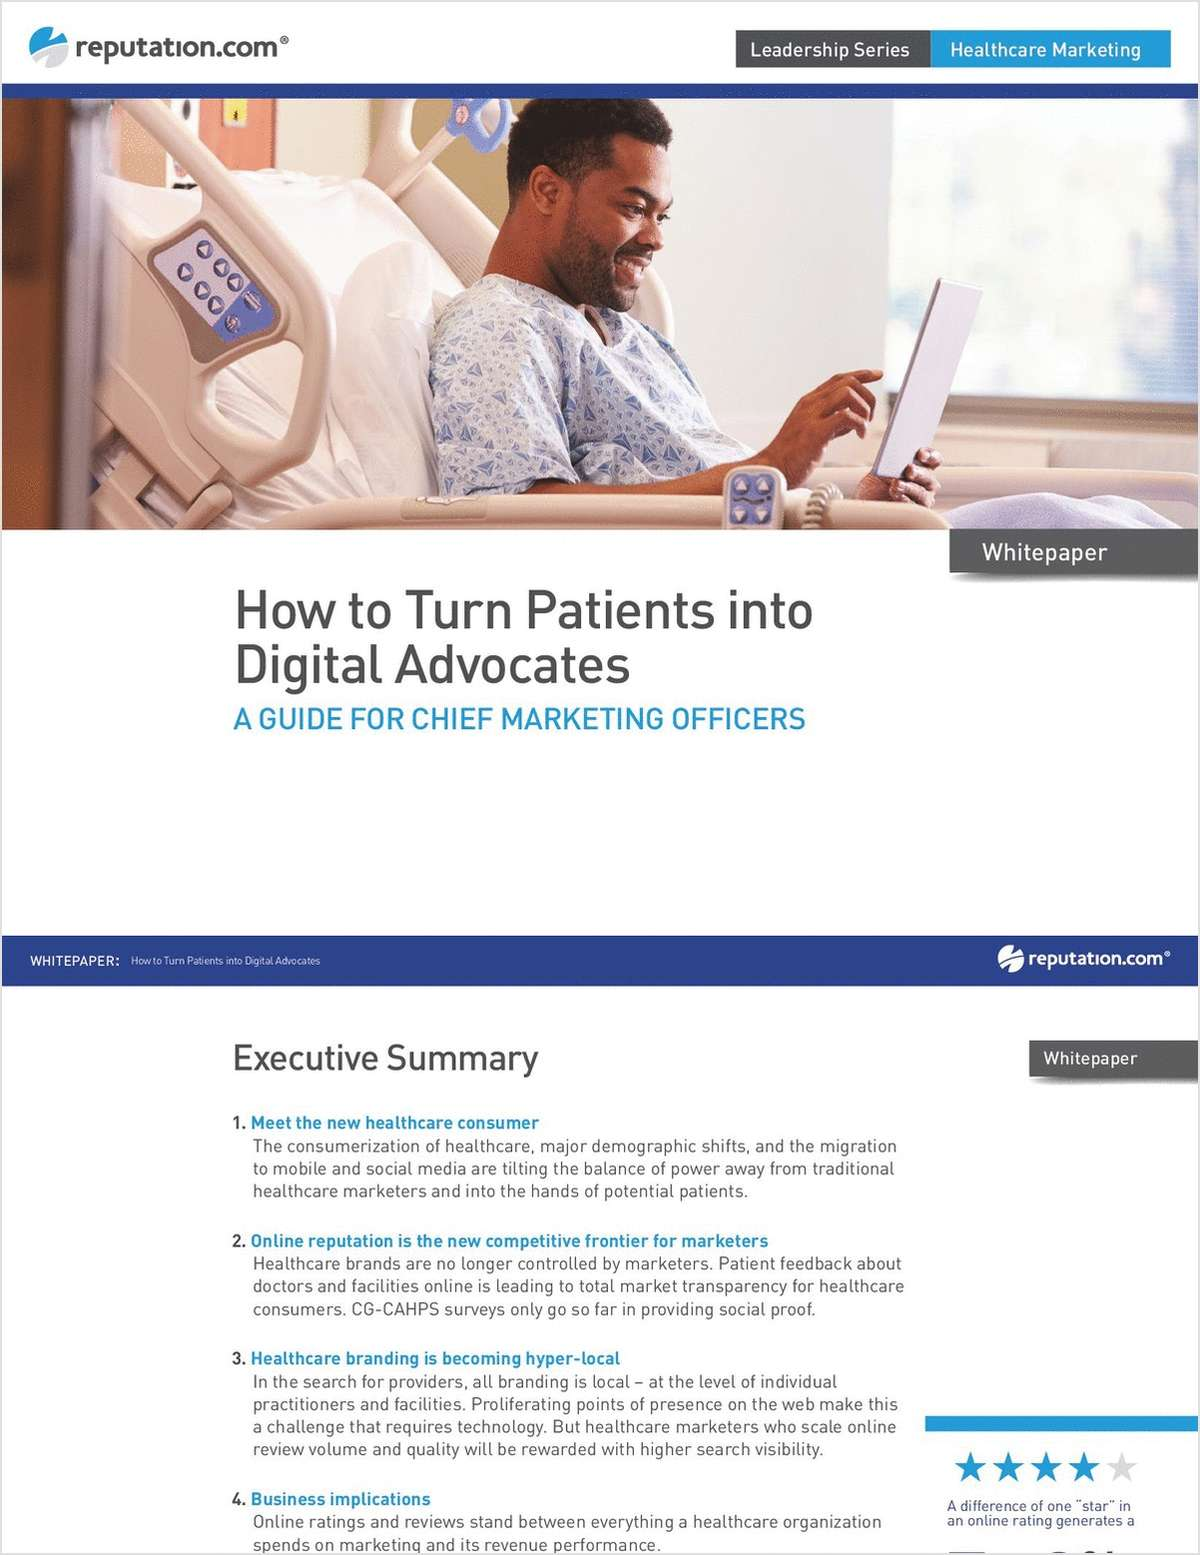 How to Turn Patients into Digital Advocates